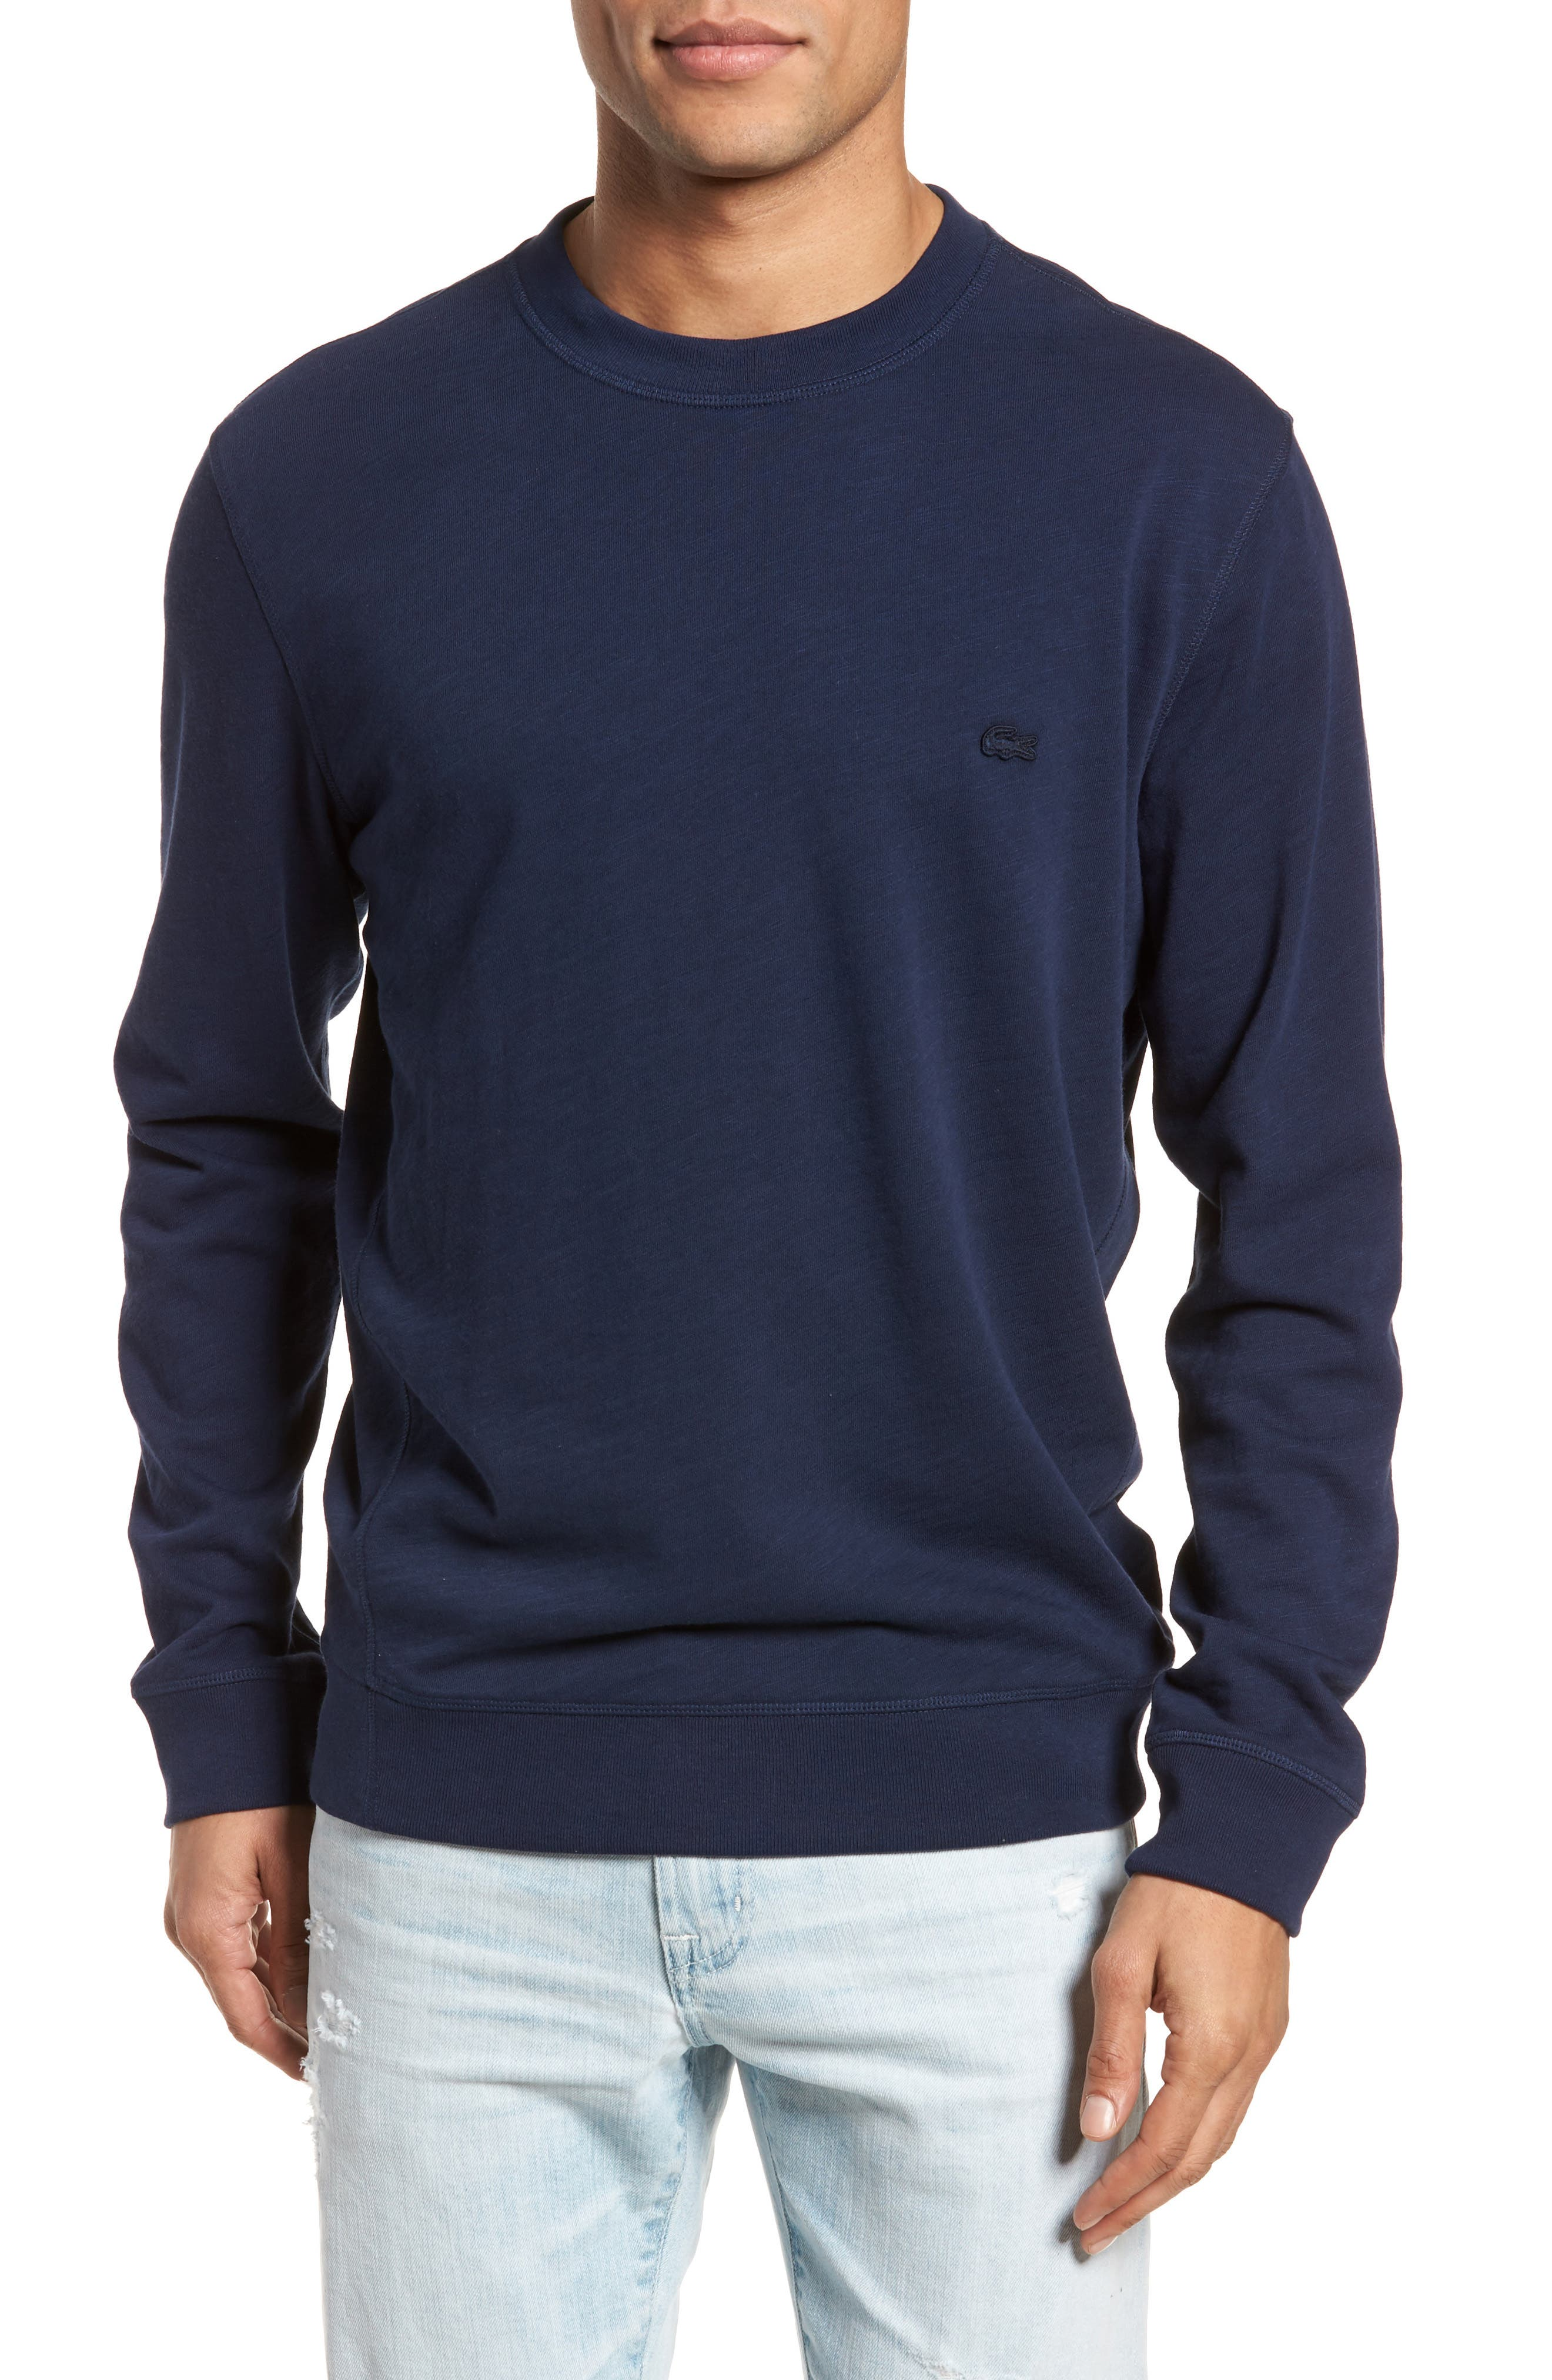 Slim Fit French Terry Sweatshirt,                         Main,                         color, Navy Blue